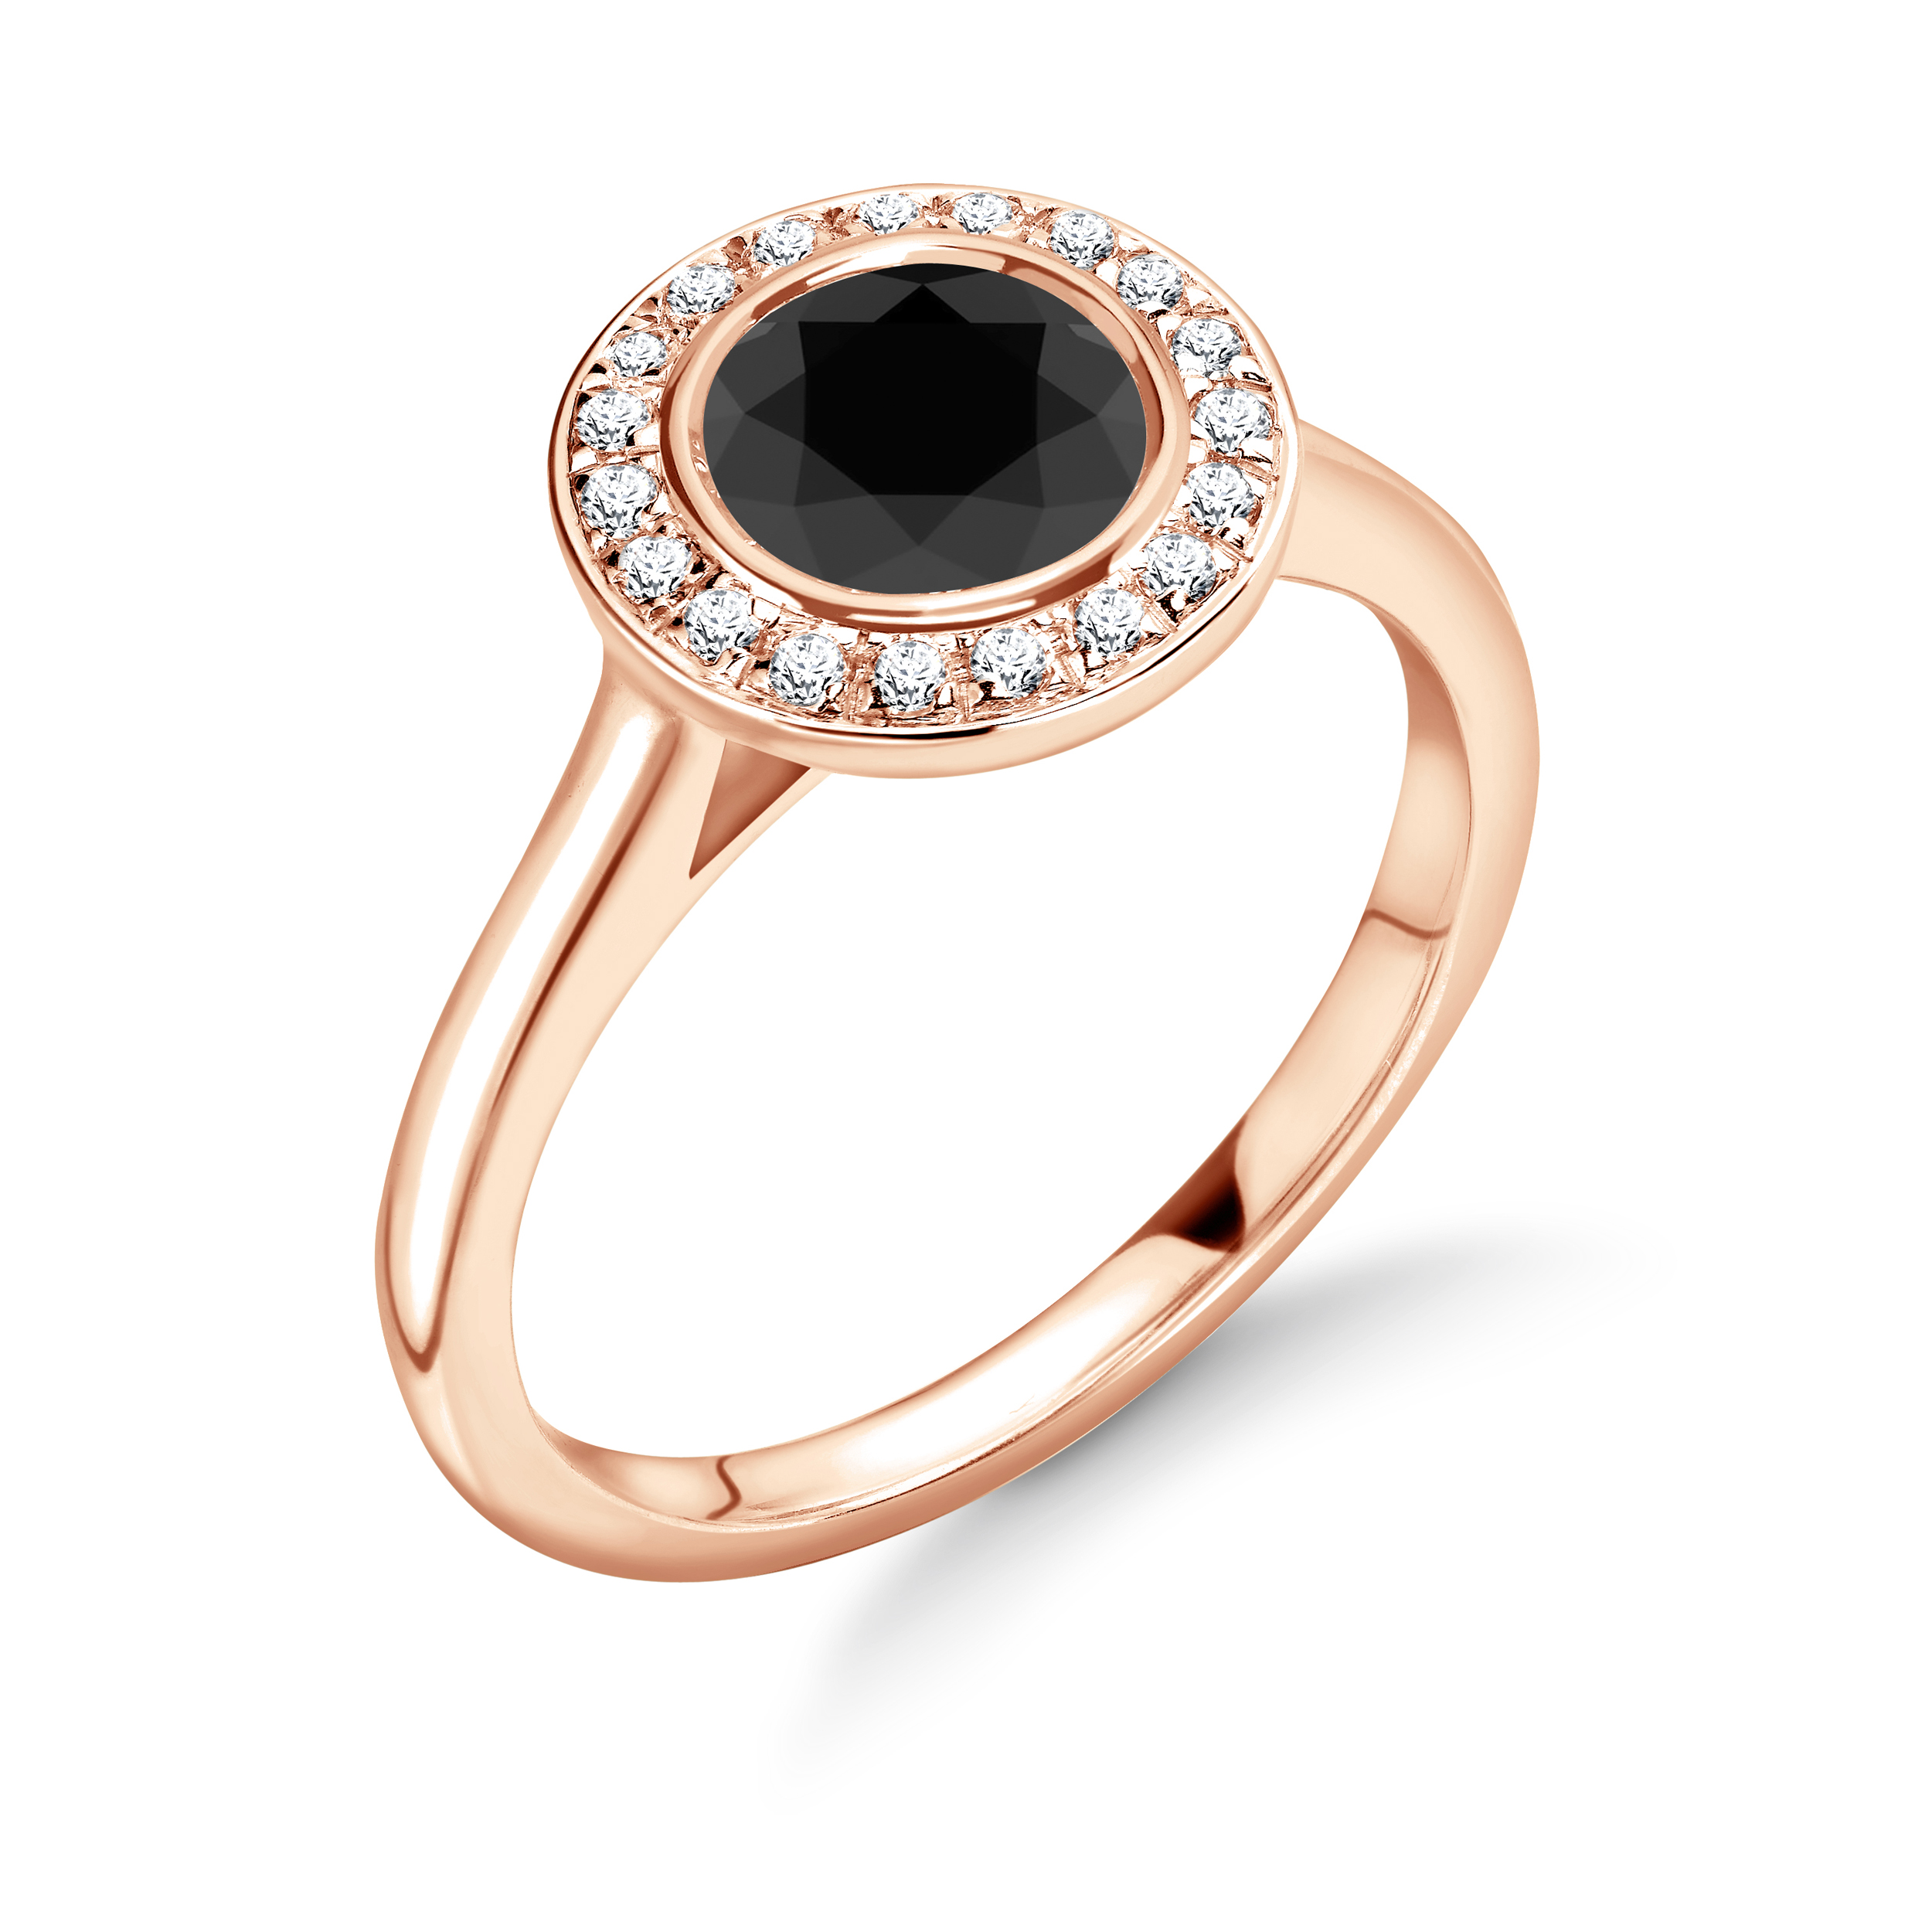 Delicate Popular Design Halo Engagement Black Diamond Rings